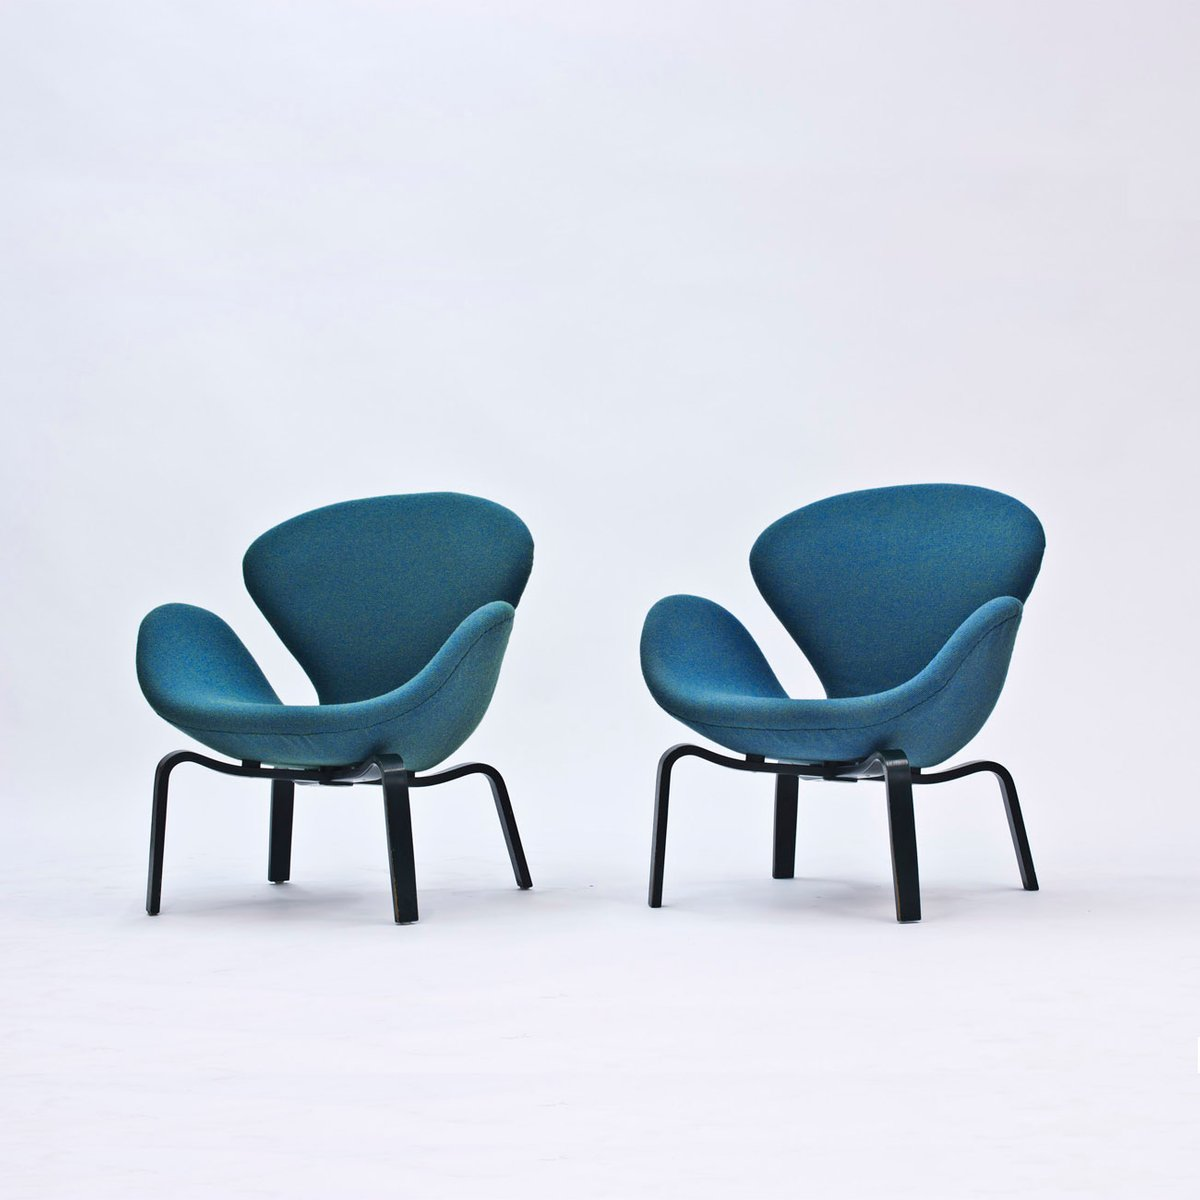 arne jacobsen furniture. swan lounge chairs by arne jacobsen for fritz hansen 1969 set of 2 furniture r